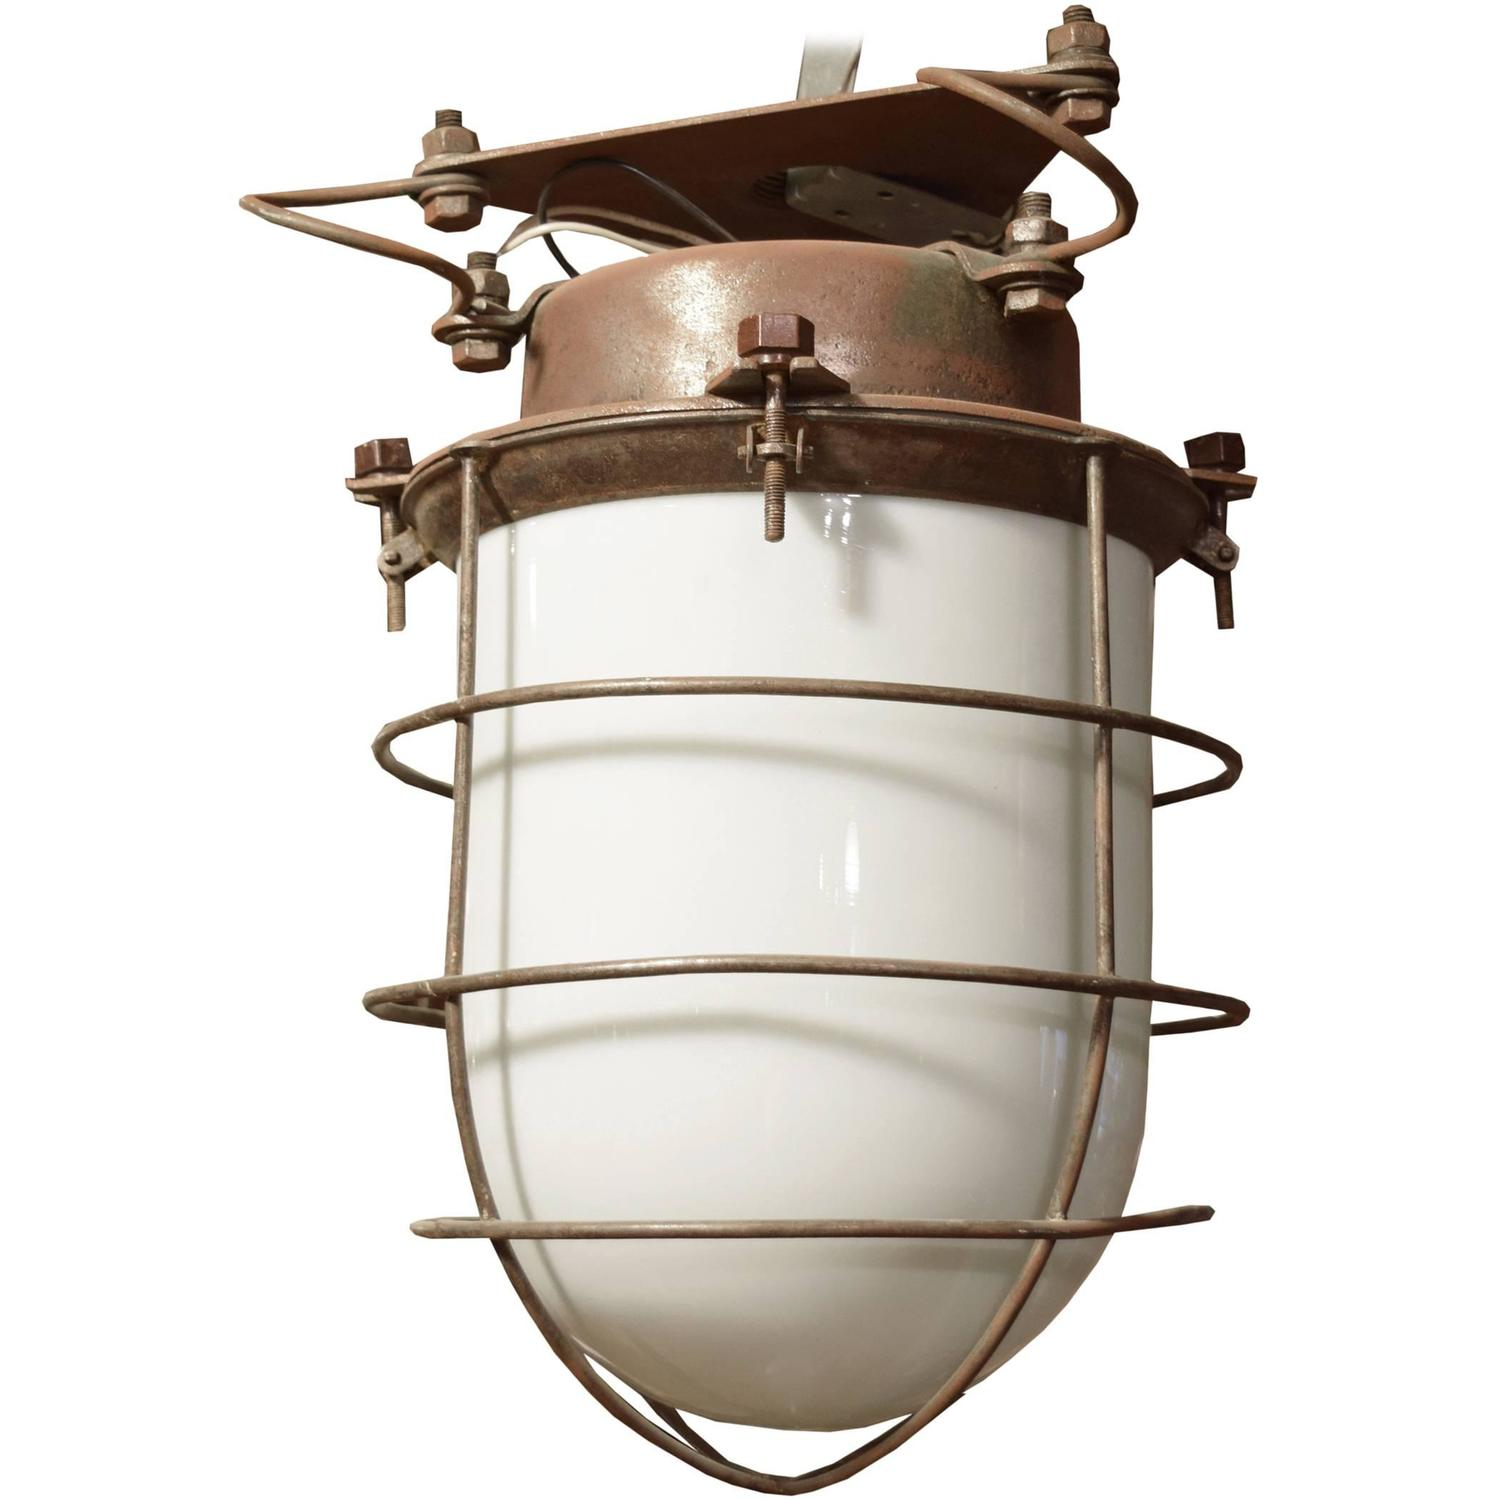 explosion proof light fixture at 1stdibs. Black Bedroom Furniture Sets. Home Design Ideas